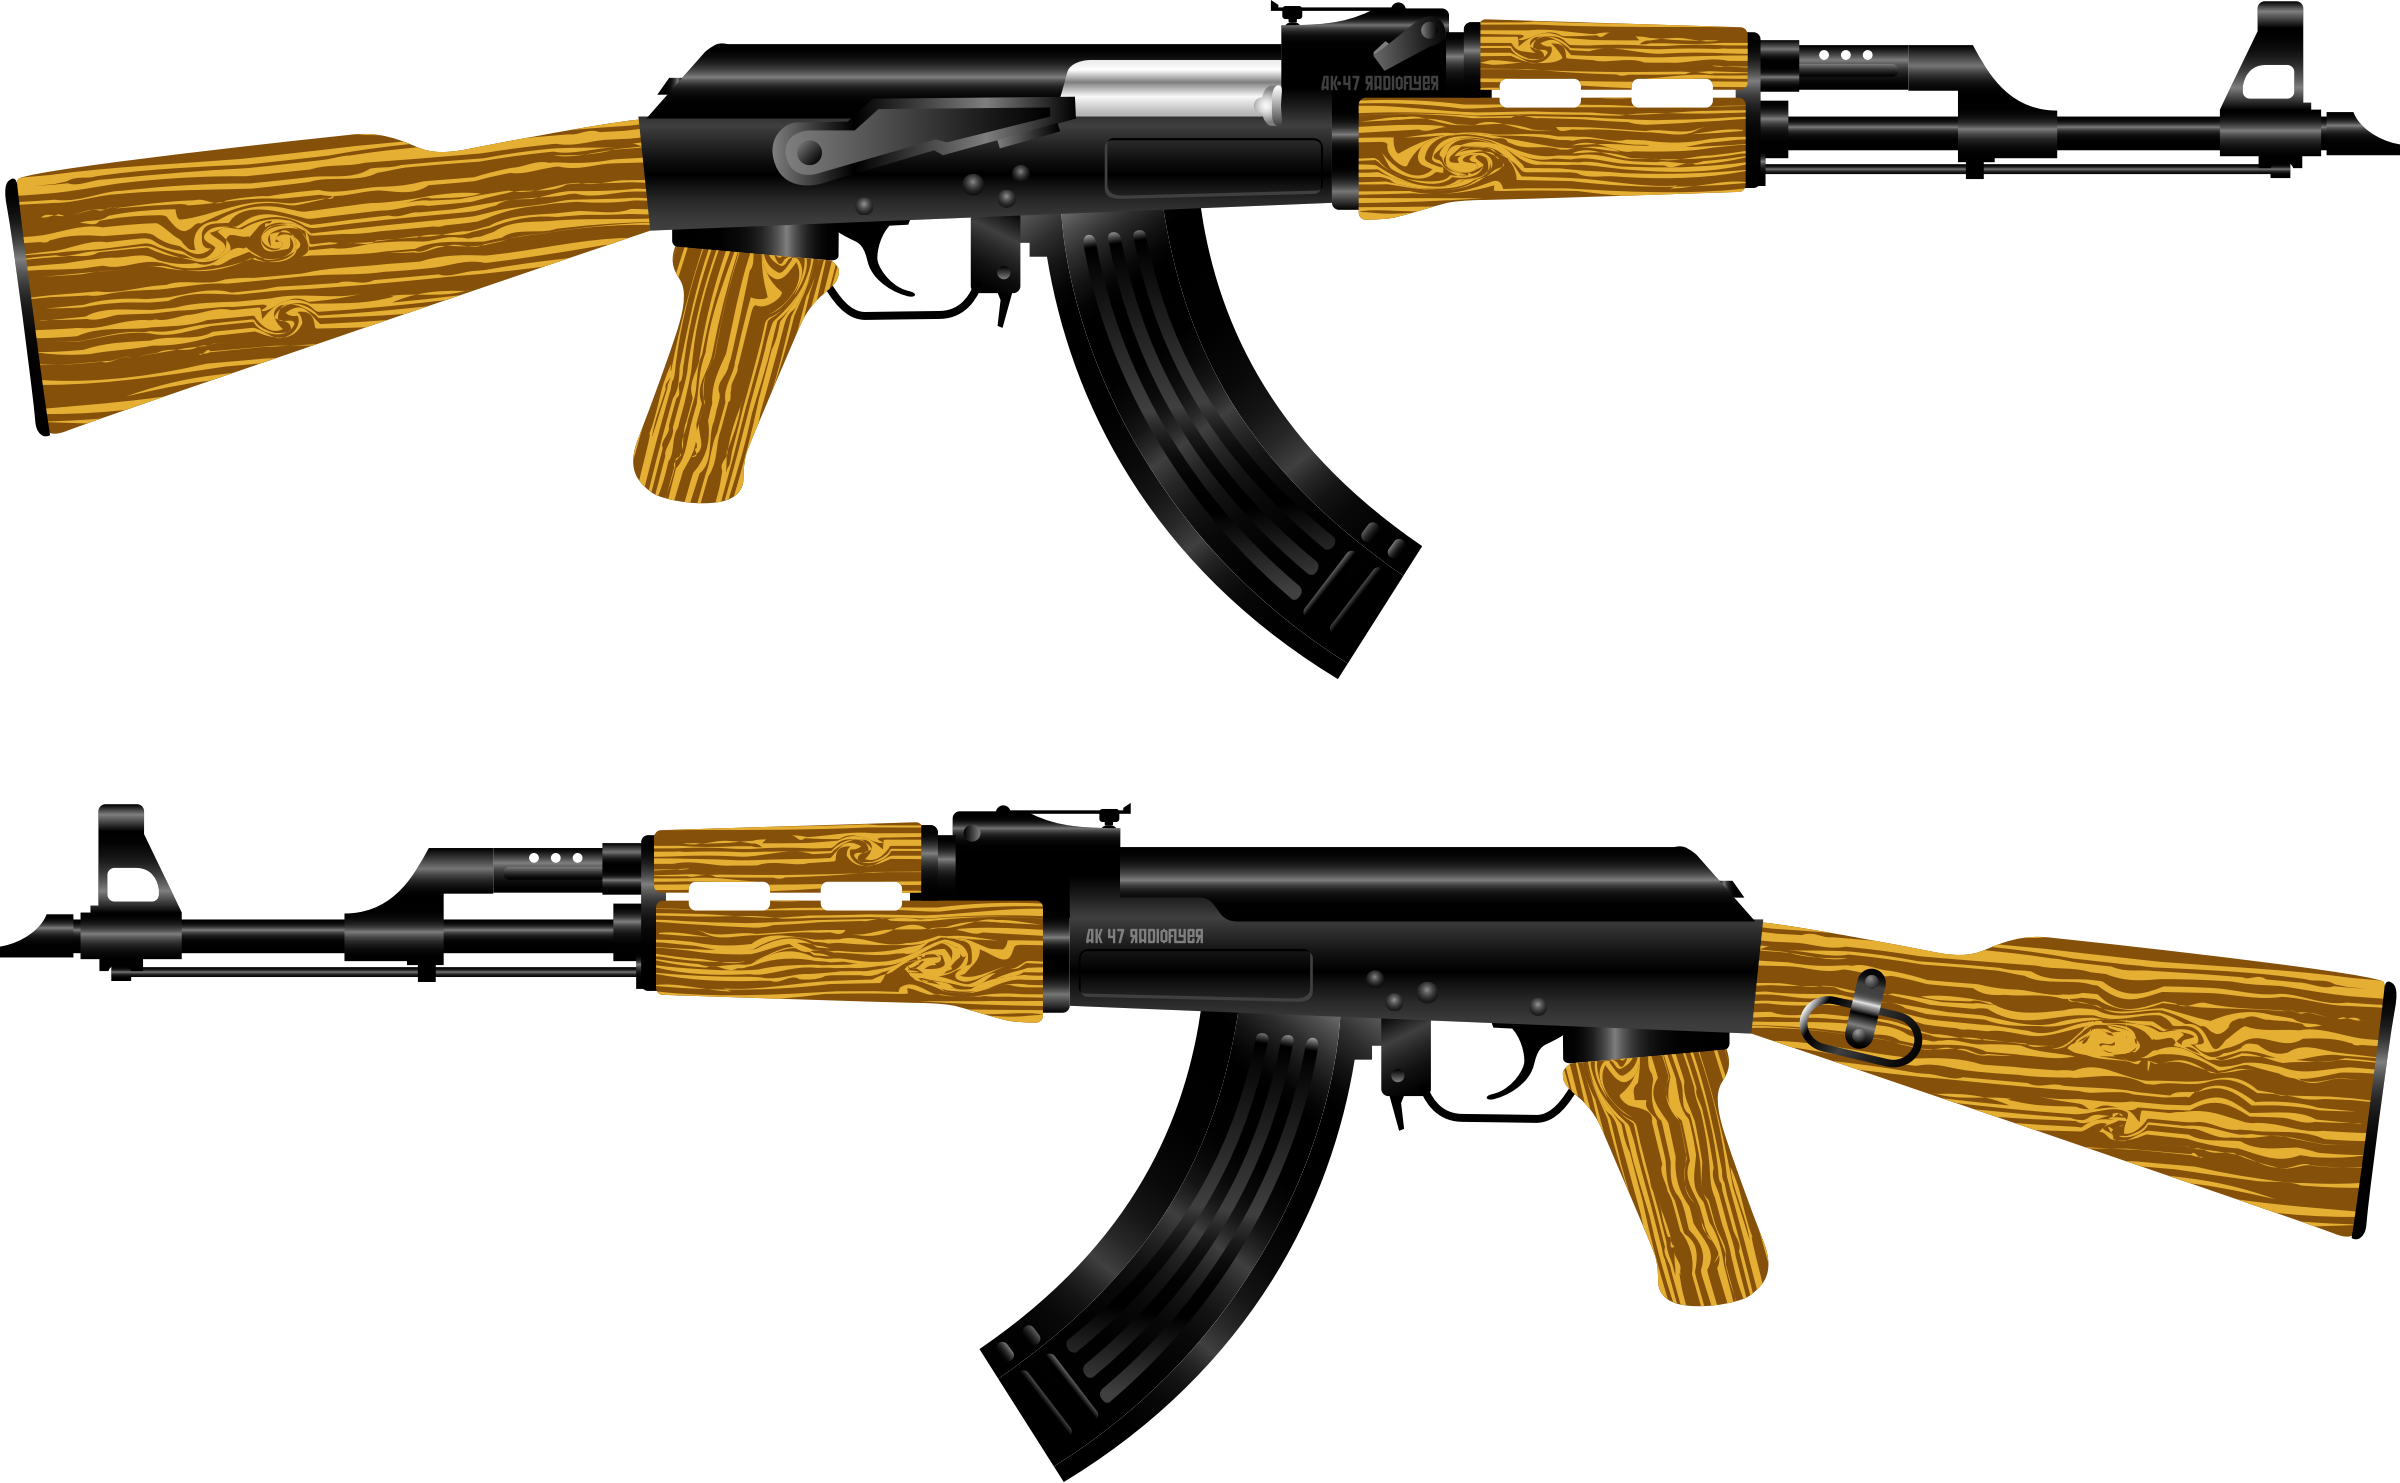 AK 47 Rifle by radioflyer